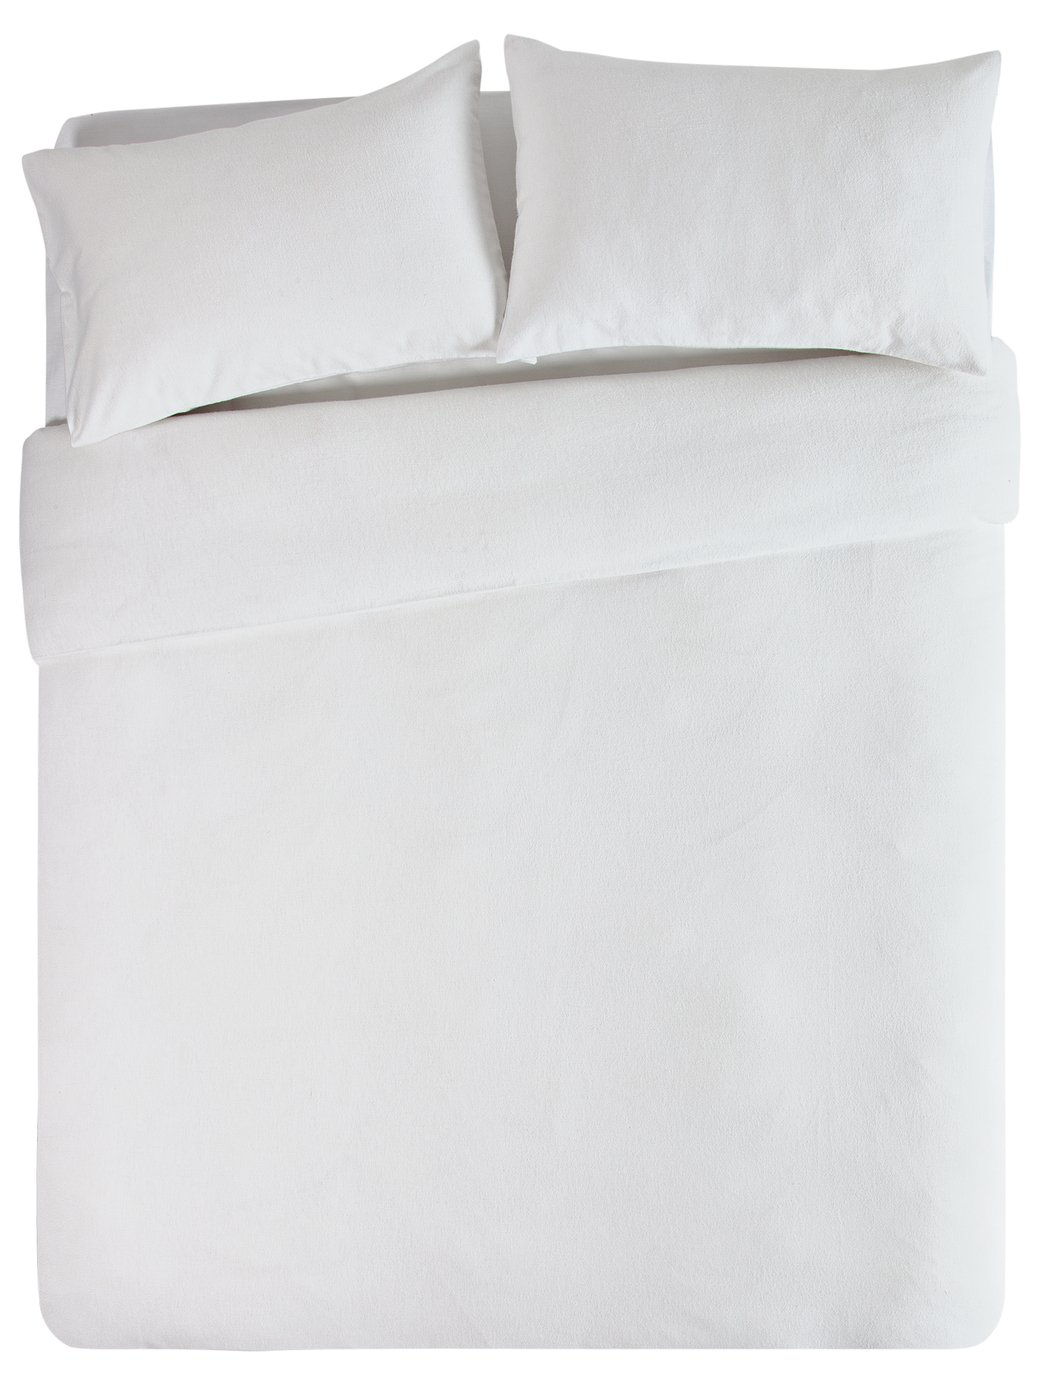 Collection - White Brushed Cotton - Bedding Set - Kingsize